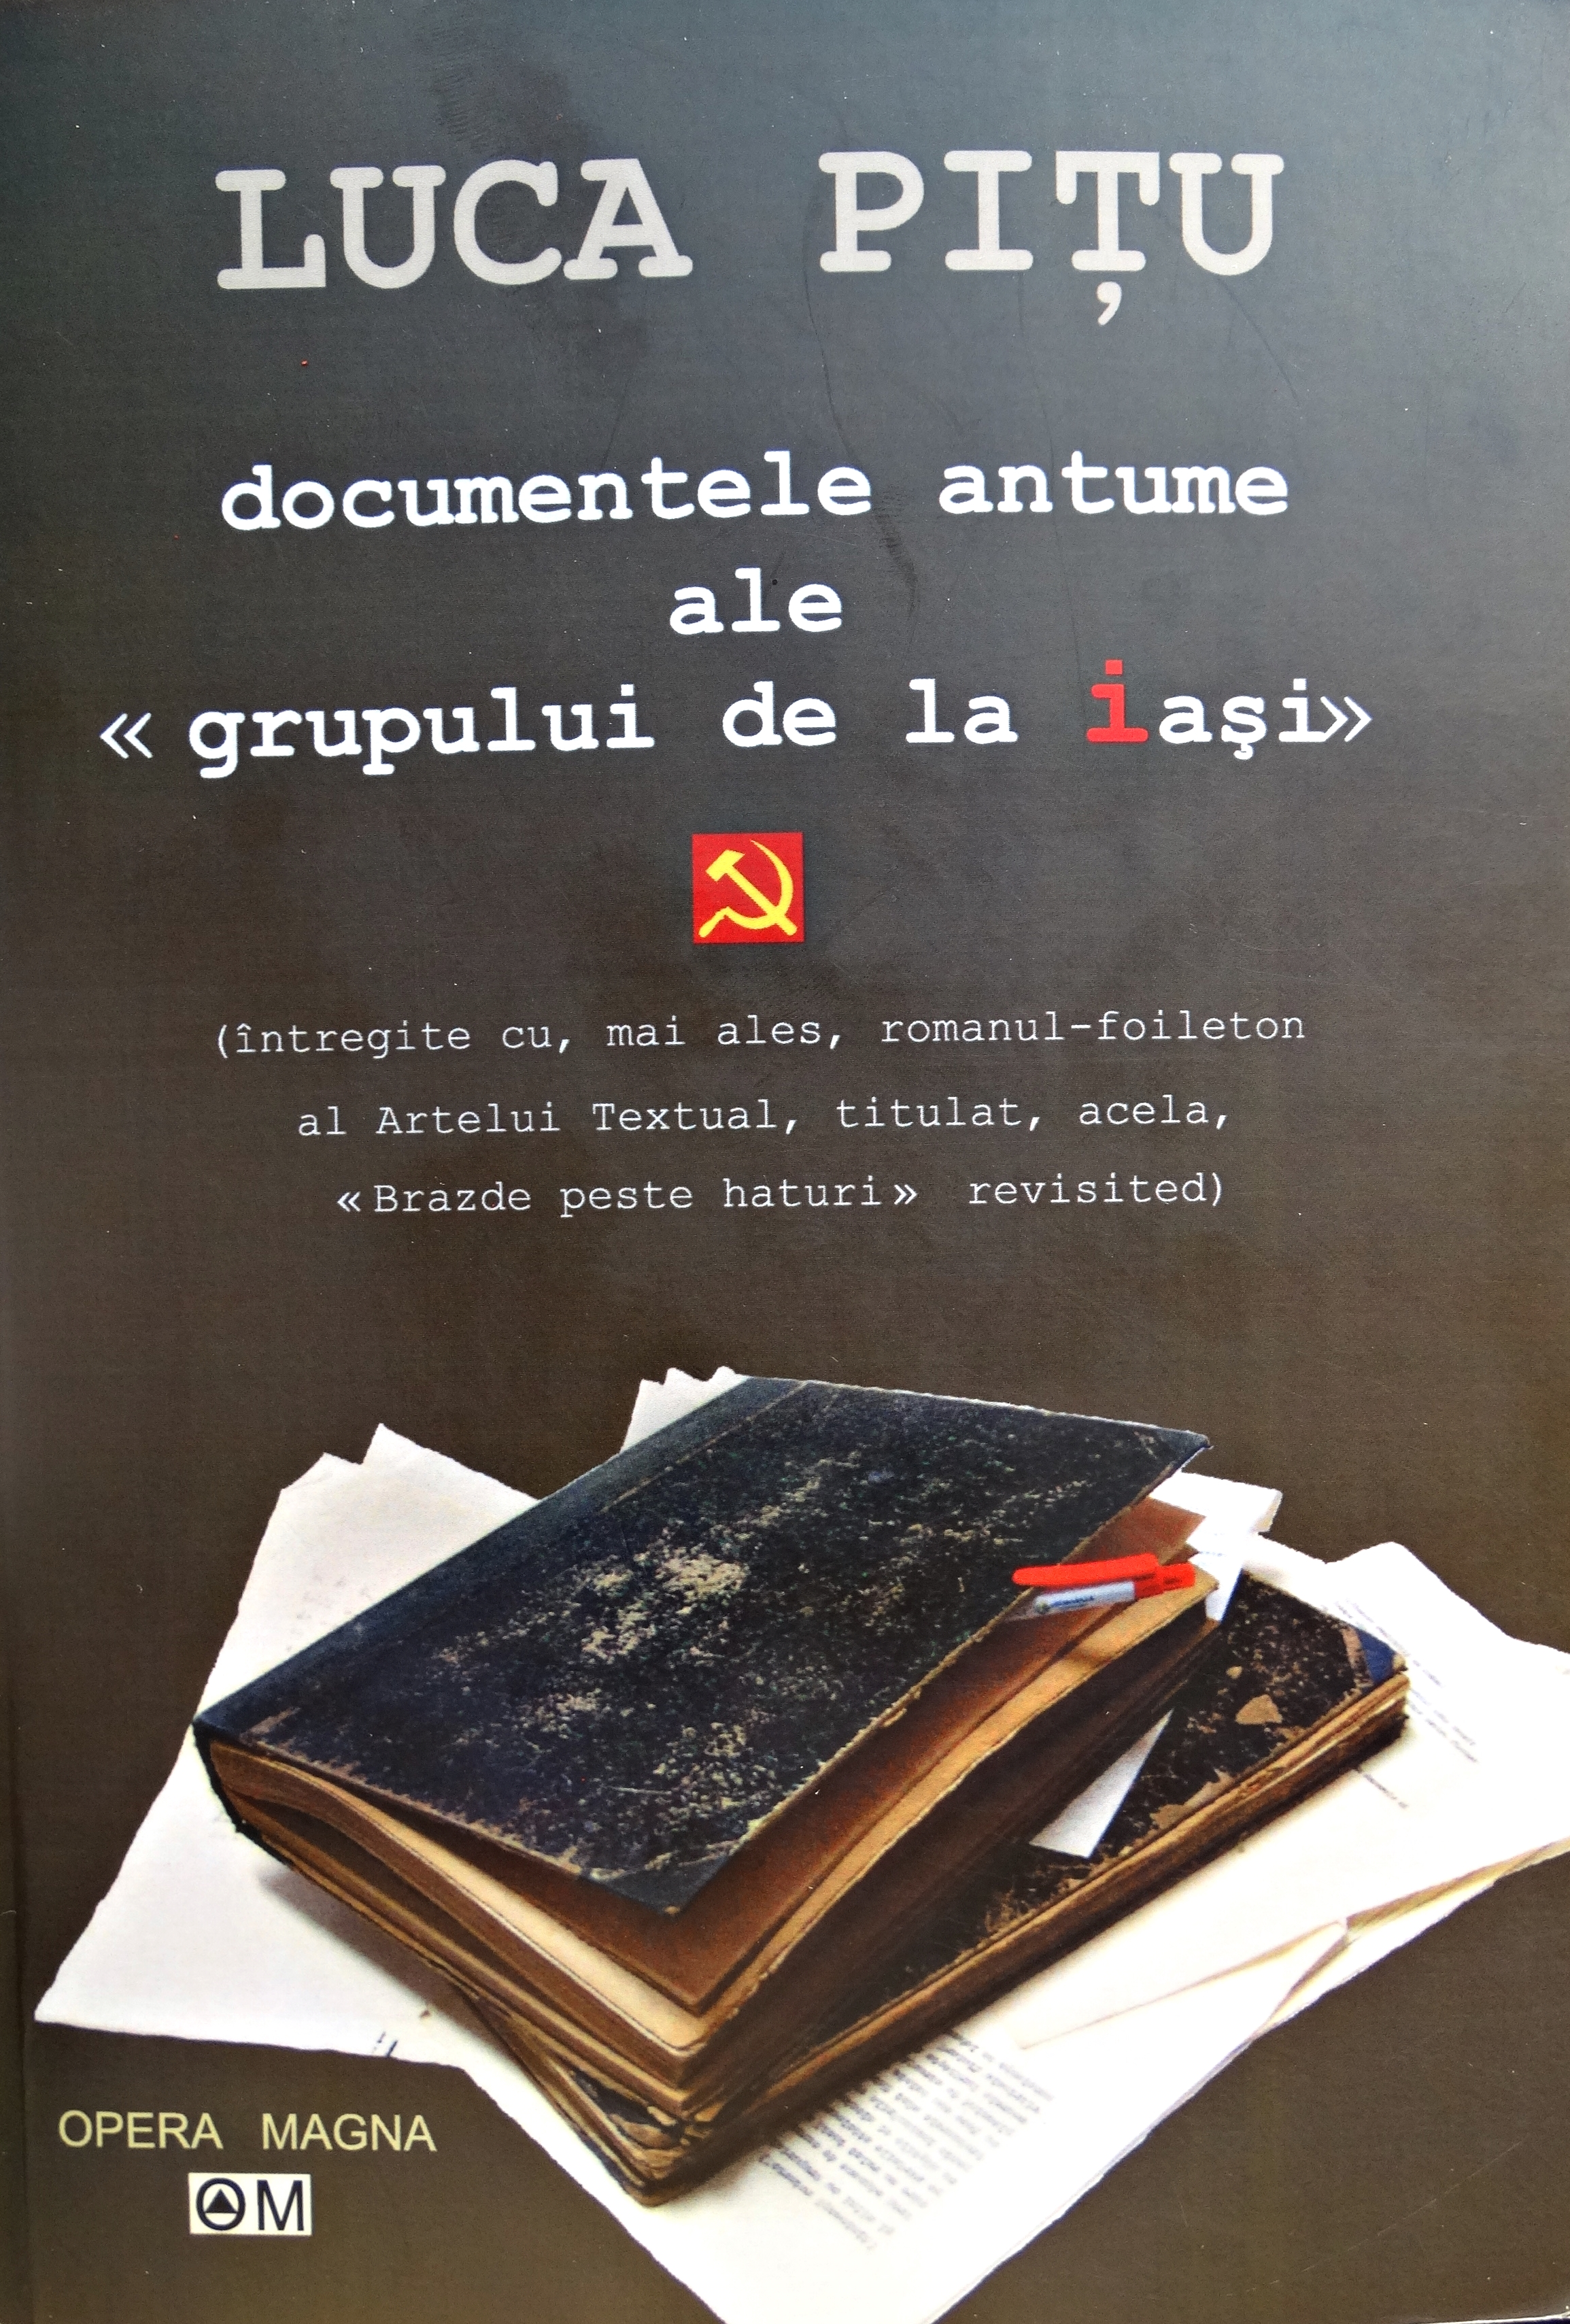 Cover of the book including the rediscovered parts of the confiscated manuscript 'Brazde peste haturi' revisited ('Furrows Across the Baulks' revisited) by Dan Petrescu et al.